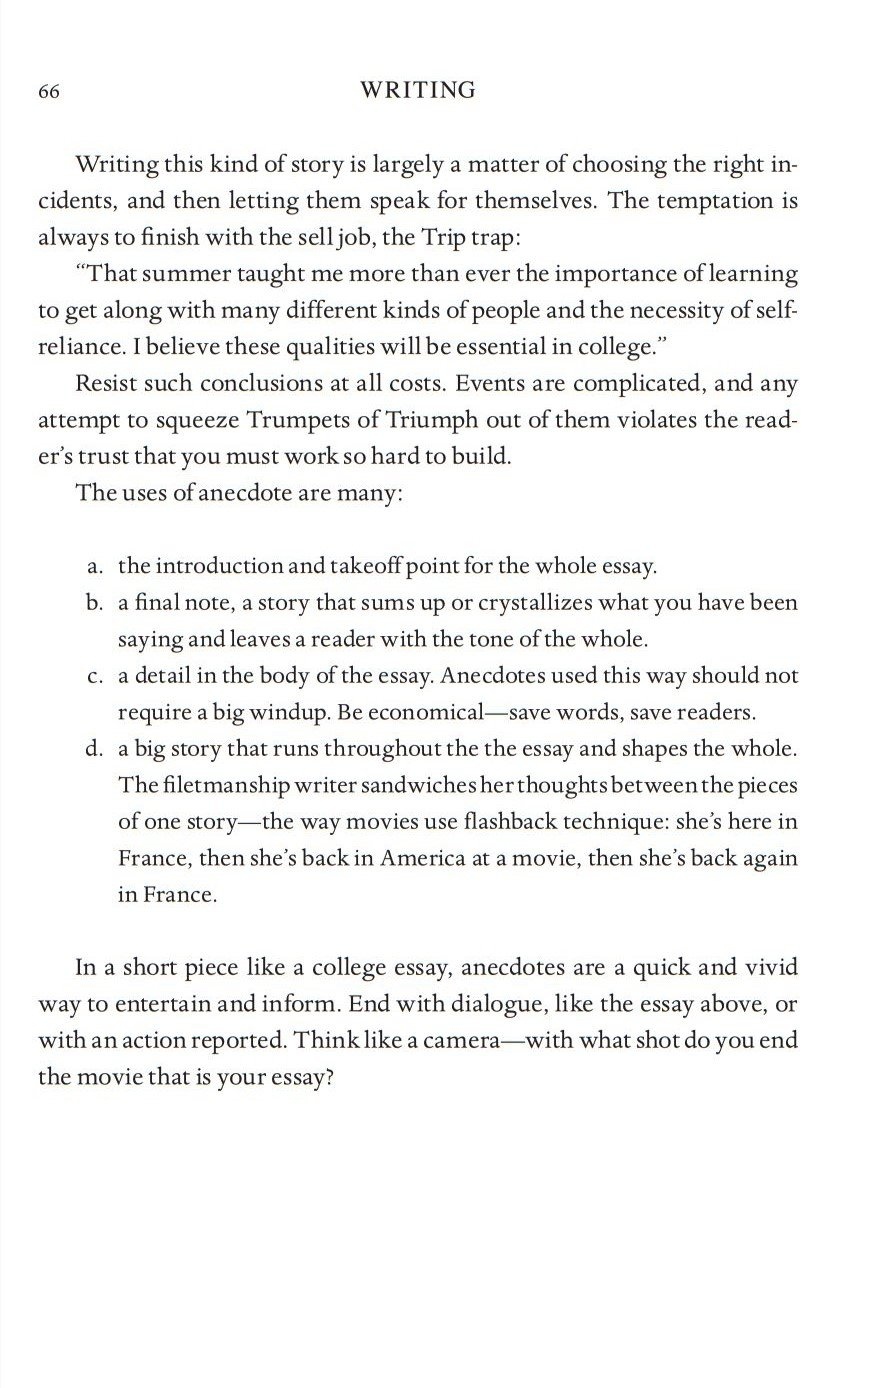 010 How To Write Dialogue In An Essay Example Singular Between Two Characters Narrative Full